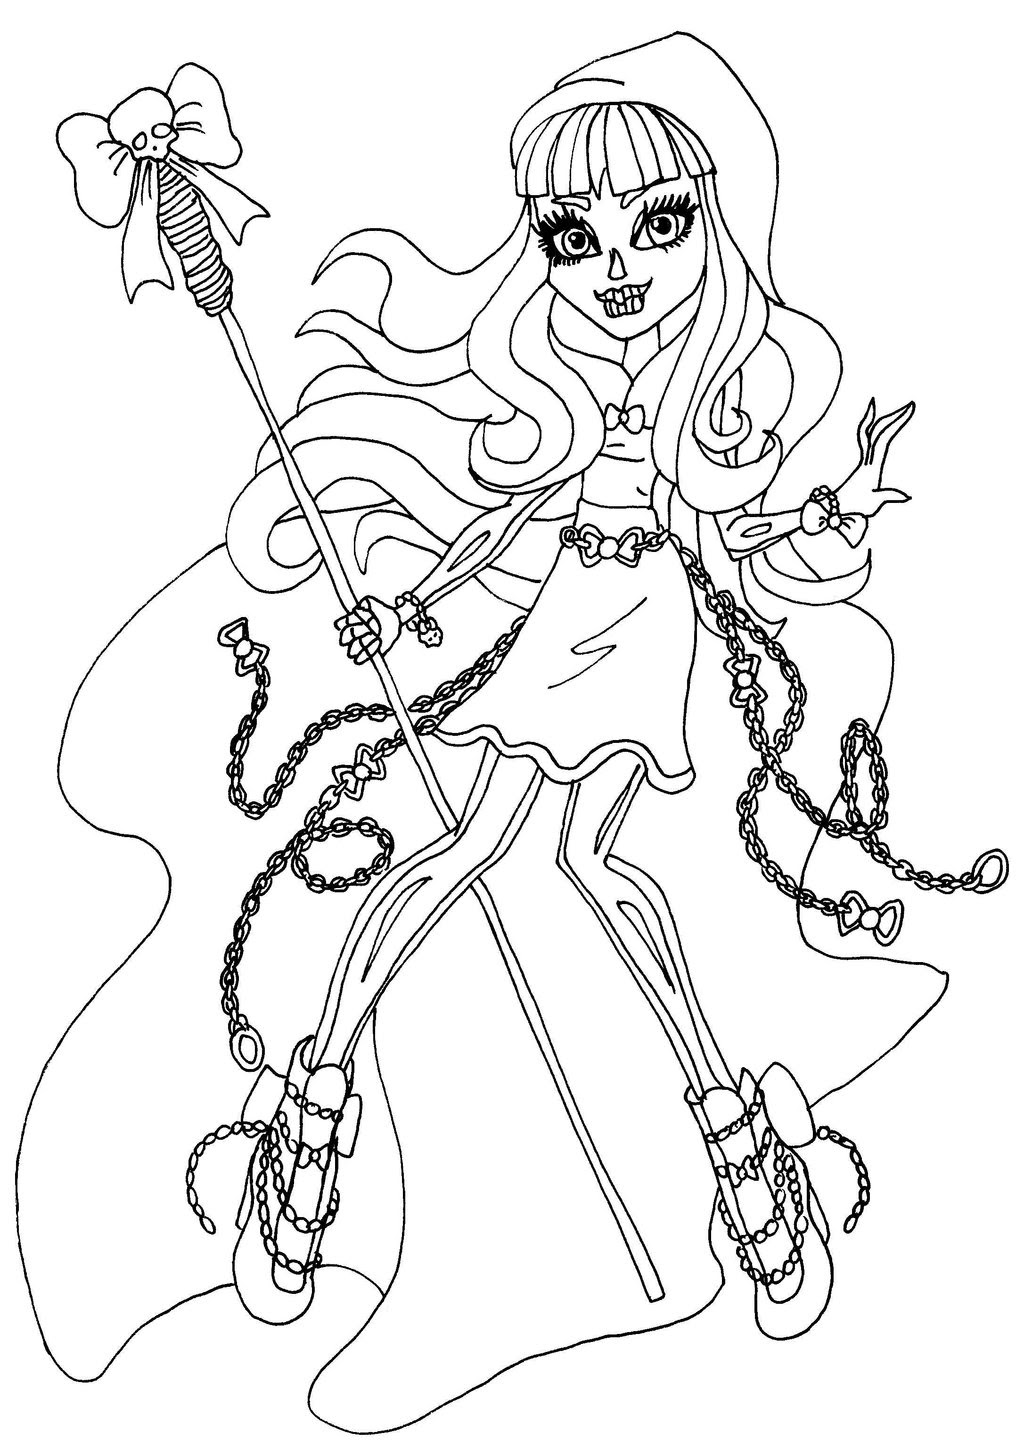 Monster High Coloring Pages Draculaura Draculaura Monster High